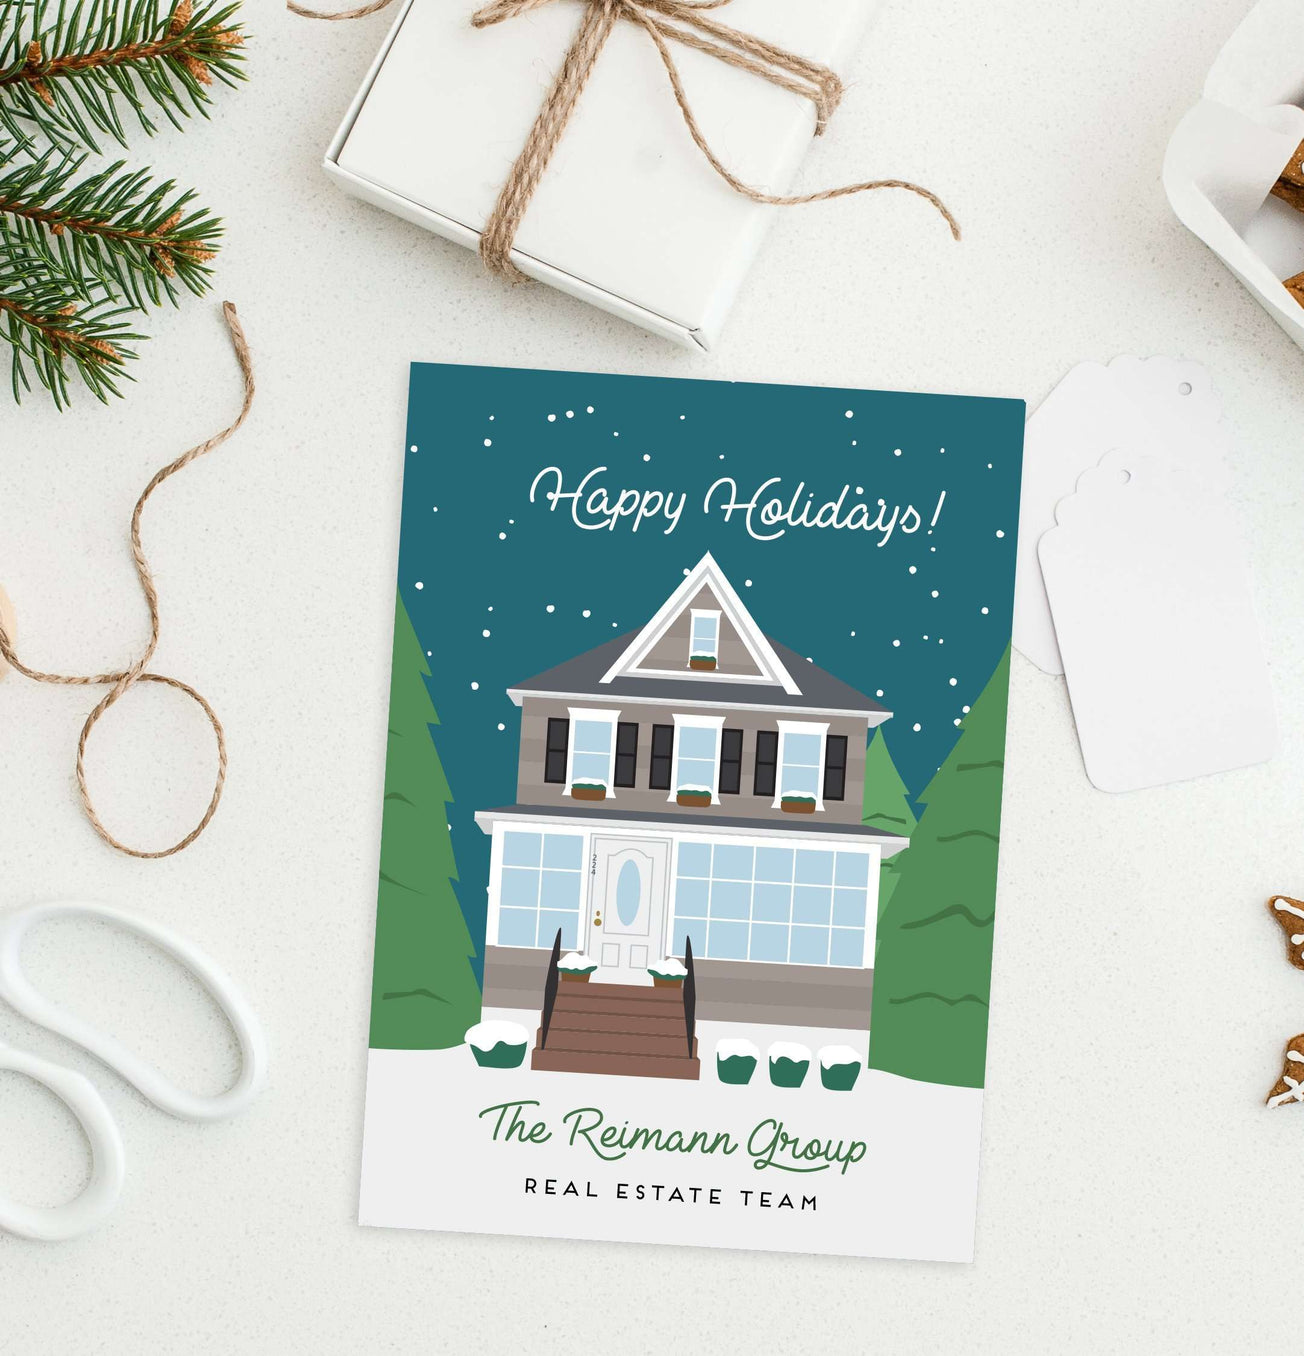 Company Holiday Cards for Corporate or Small Business - Building Portr